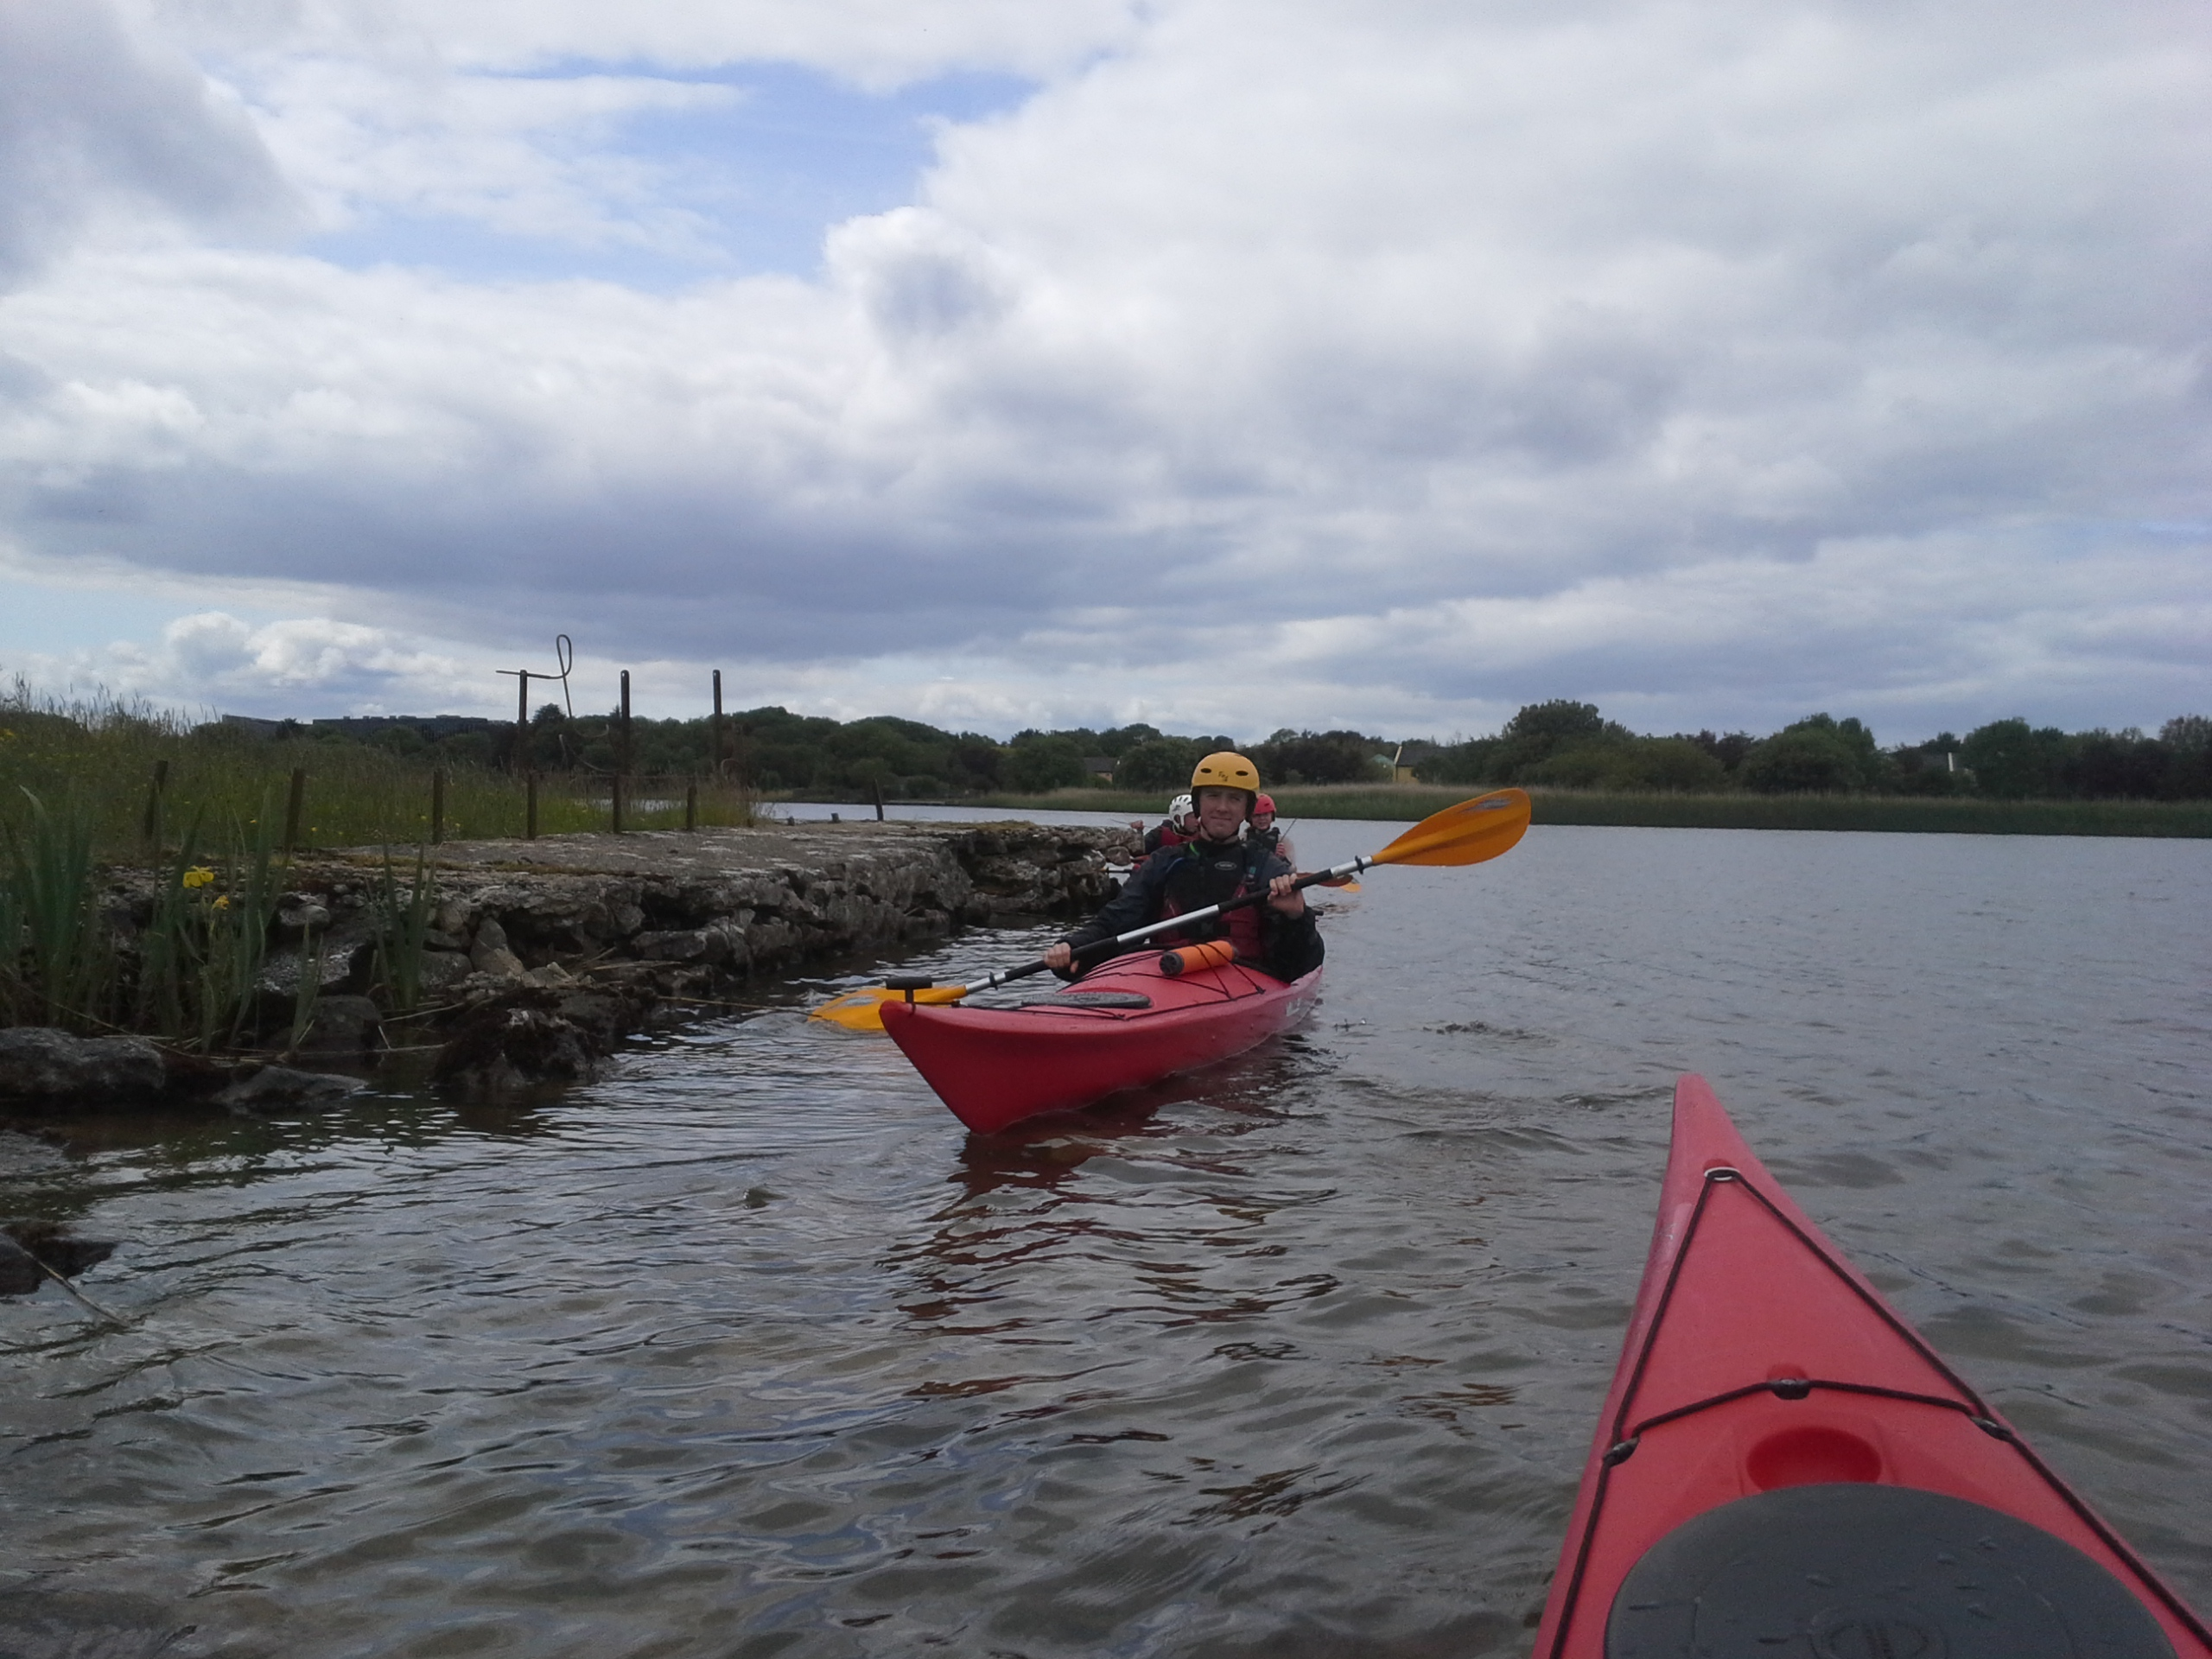 Sea Kayaking on the River